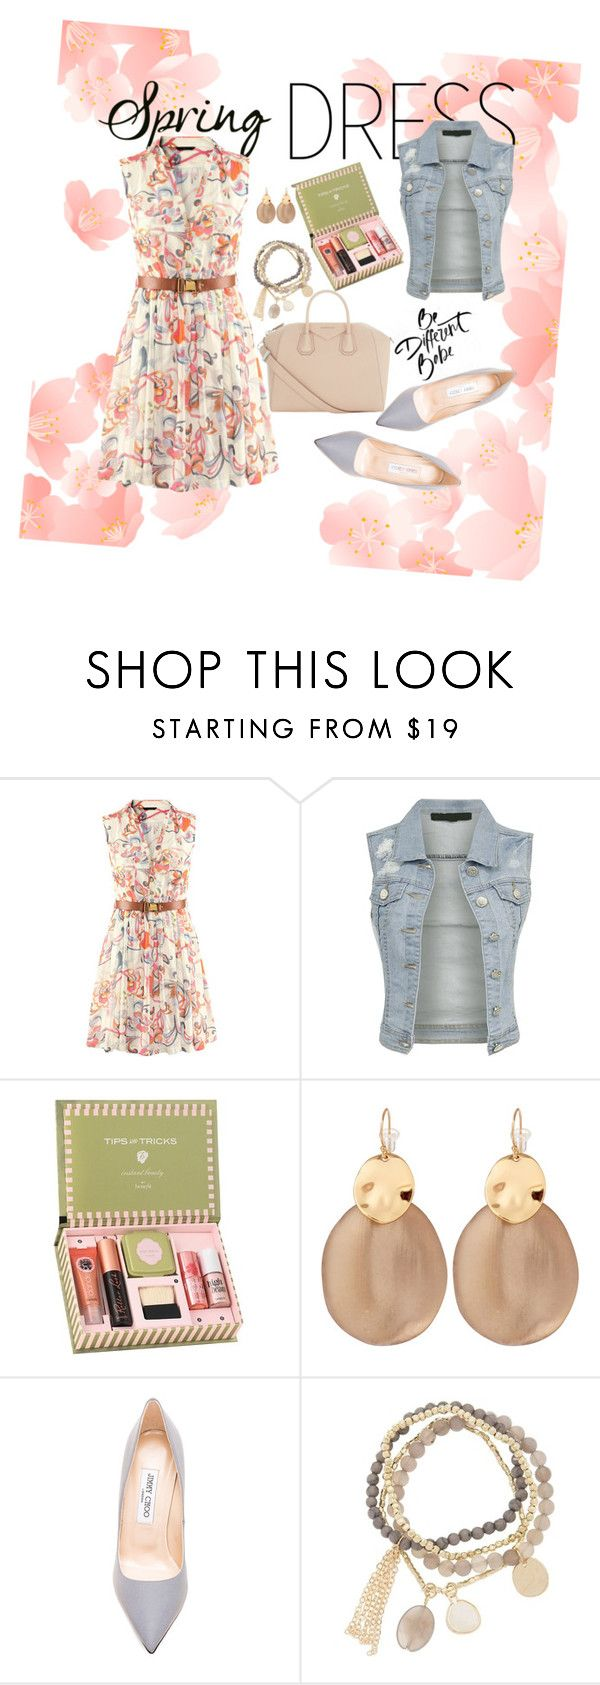 """""""Spring Dress"""" by senadious ❤ liked on Polyvore featuring Benefit, Alexis Bittar, Jimmy Choo, DesignSix and Givenchy"""